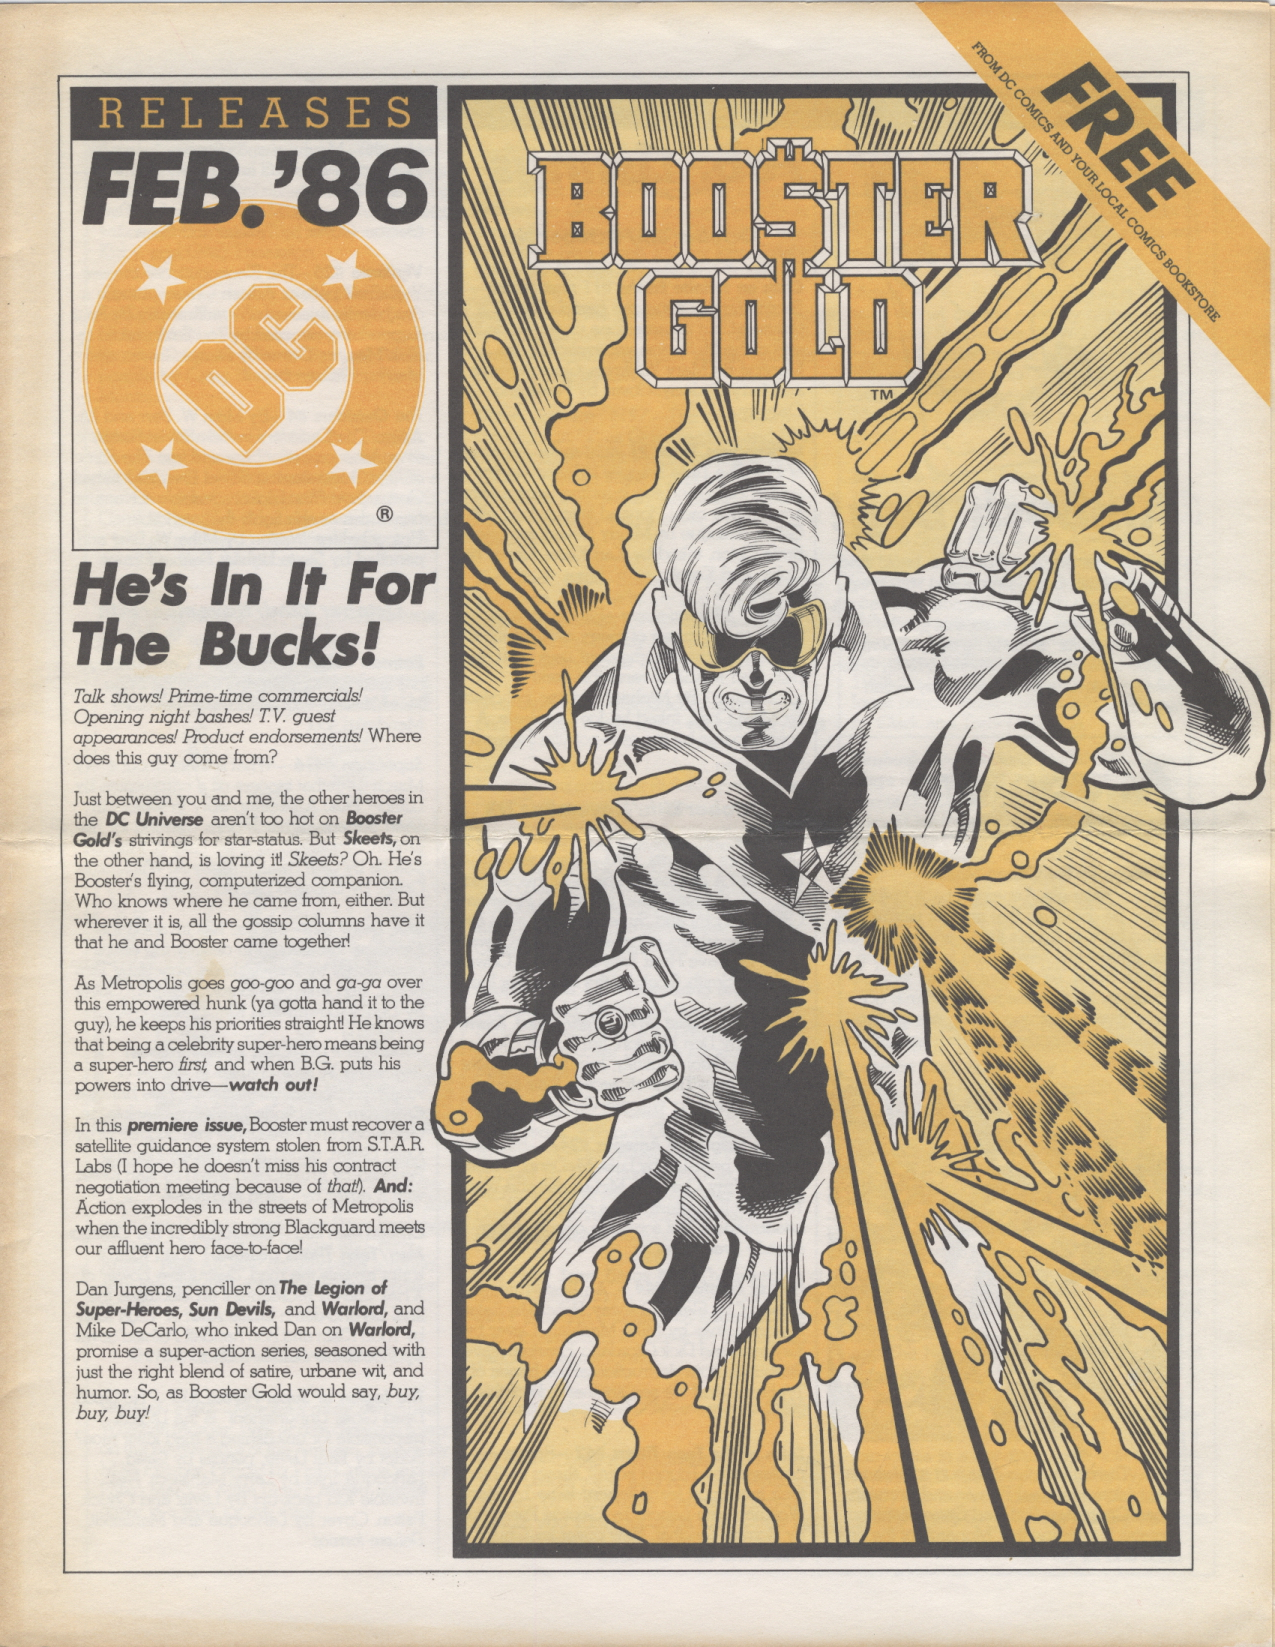 Time Capsule: DC Releases Feb '86